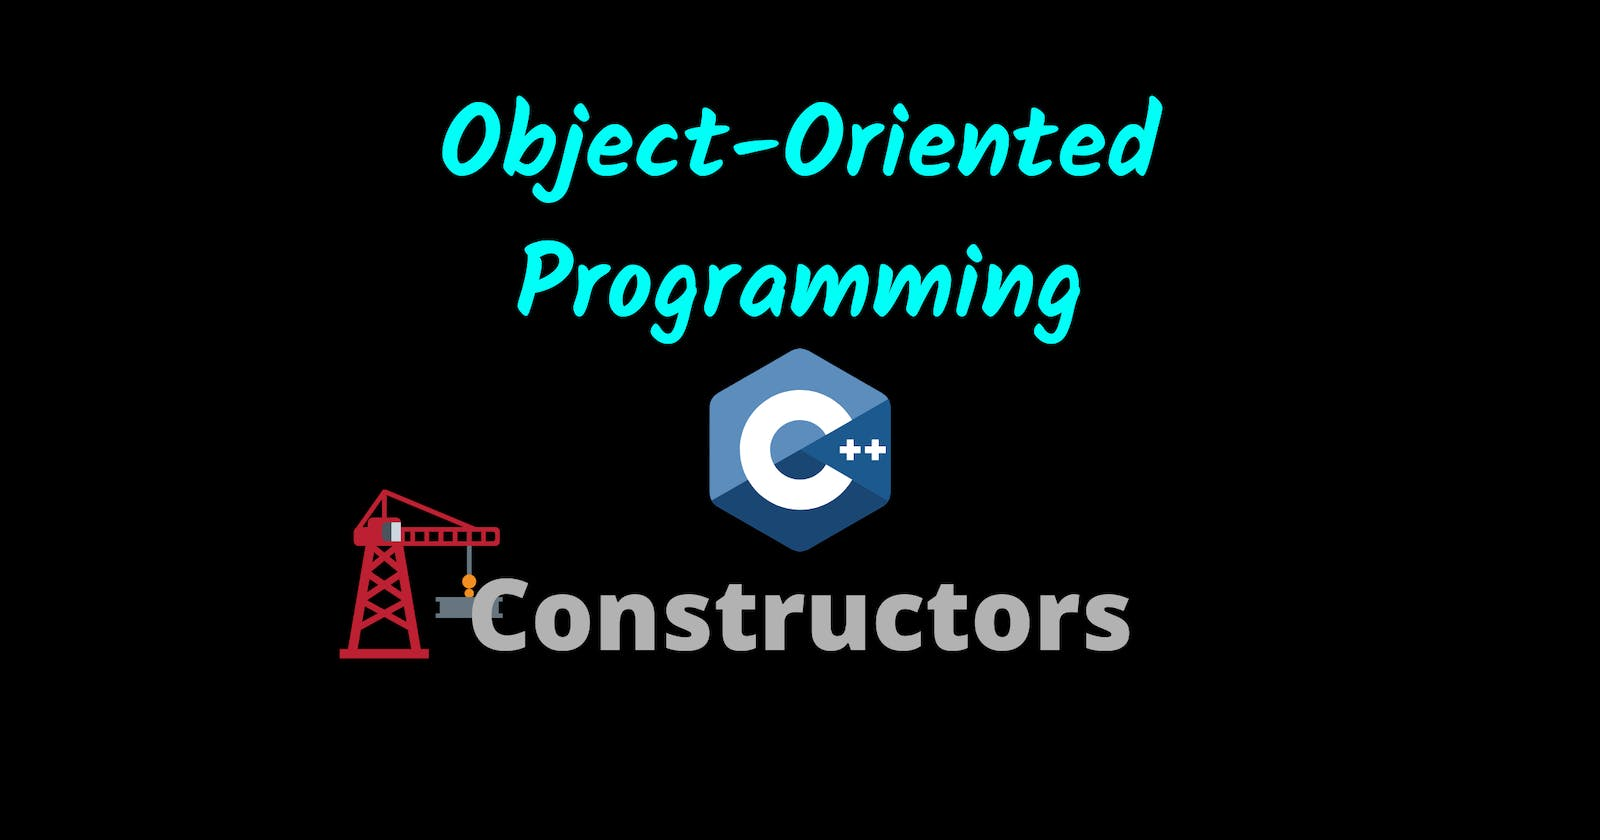 Object-Oriented Programming in C++: Constructors